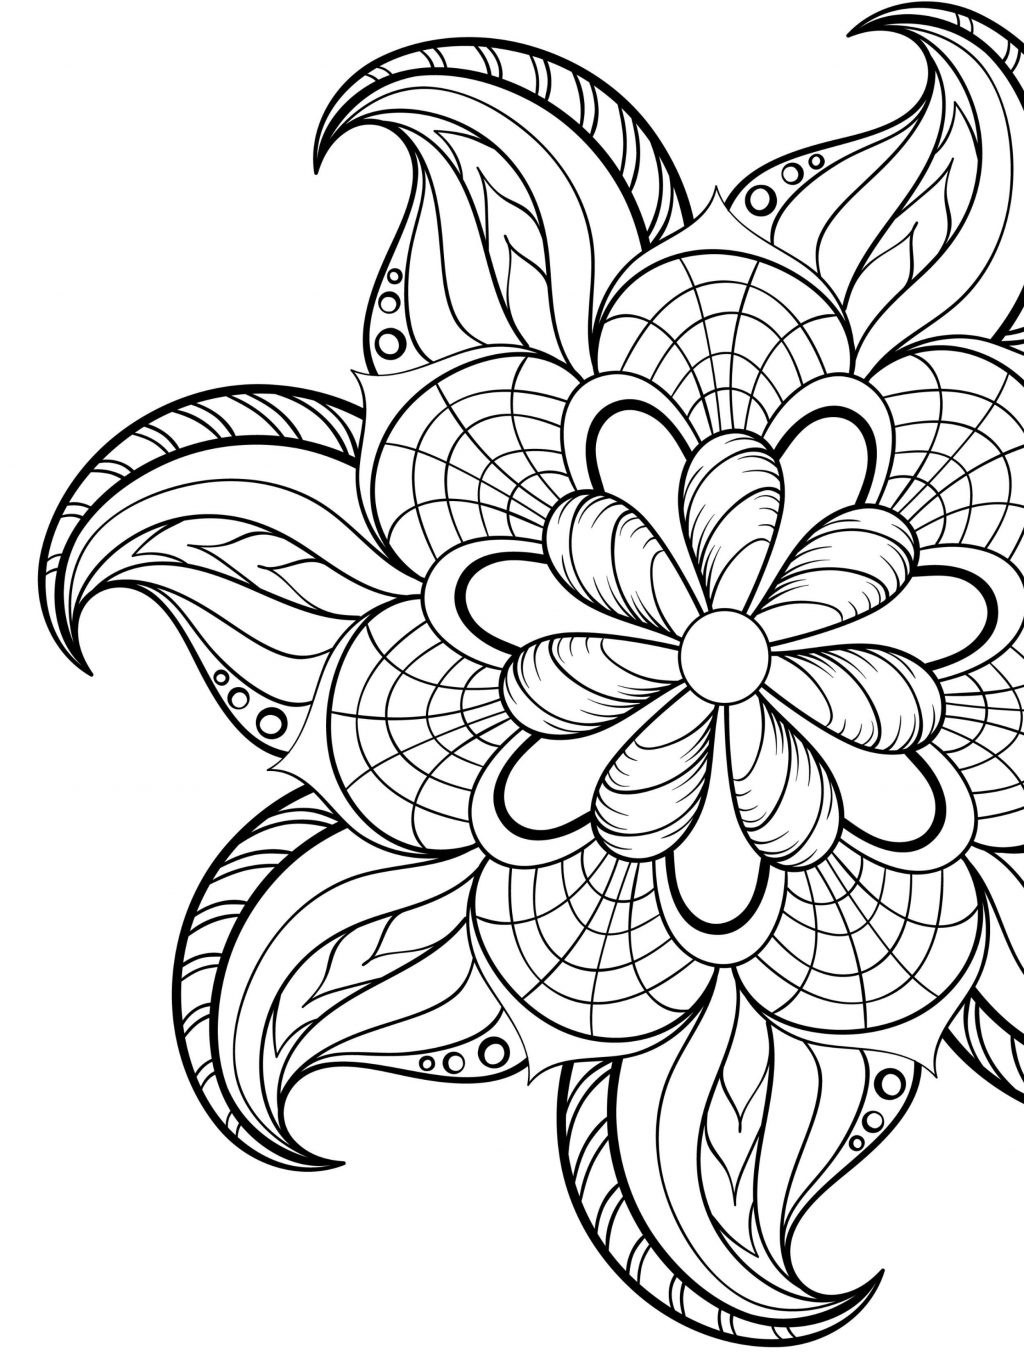 Coloring Page ~ Printable Coloring Sheets For Adults Page Gorgeous - Free Printable Coloring Books For Adults